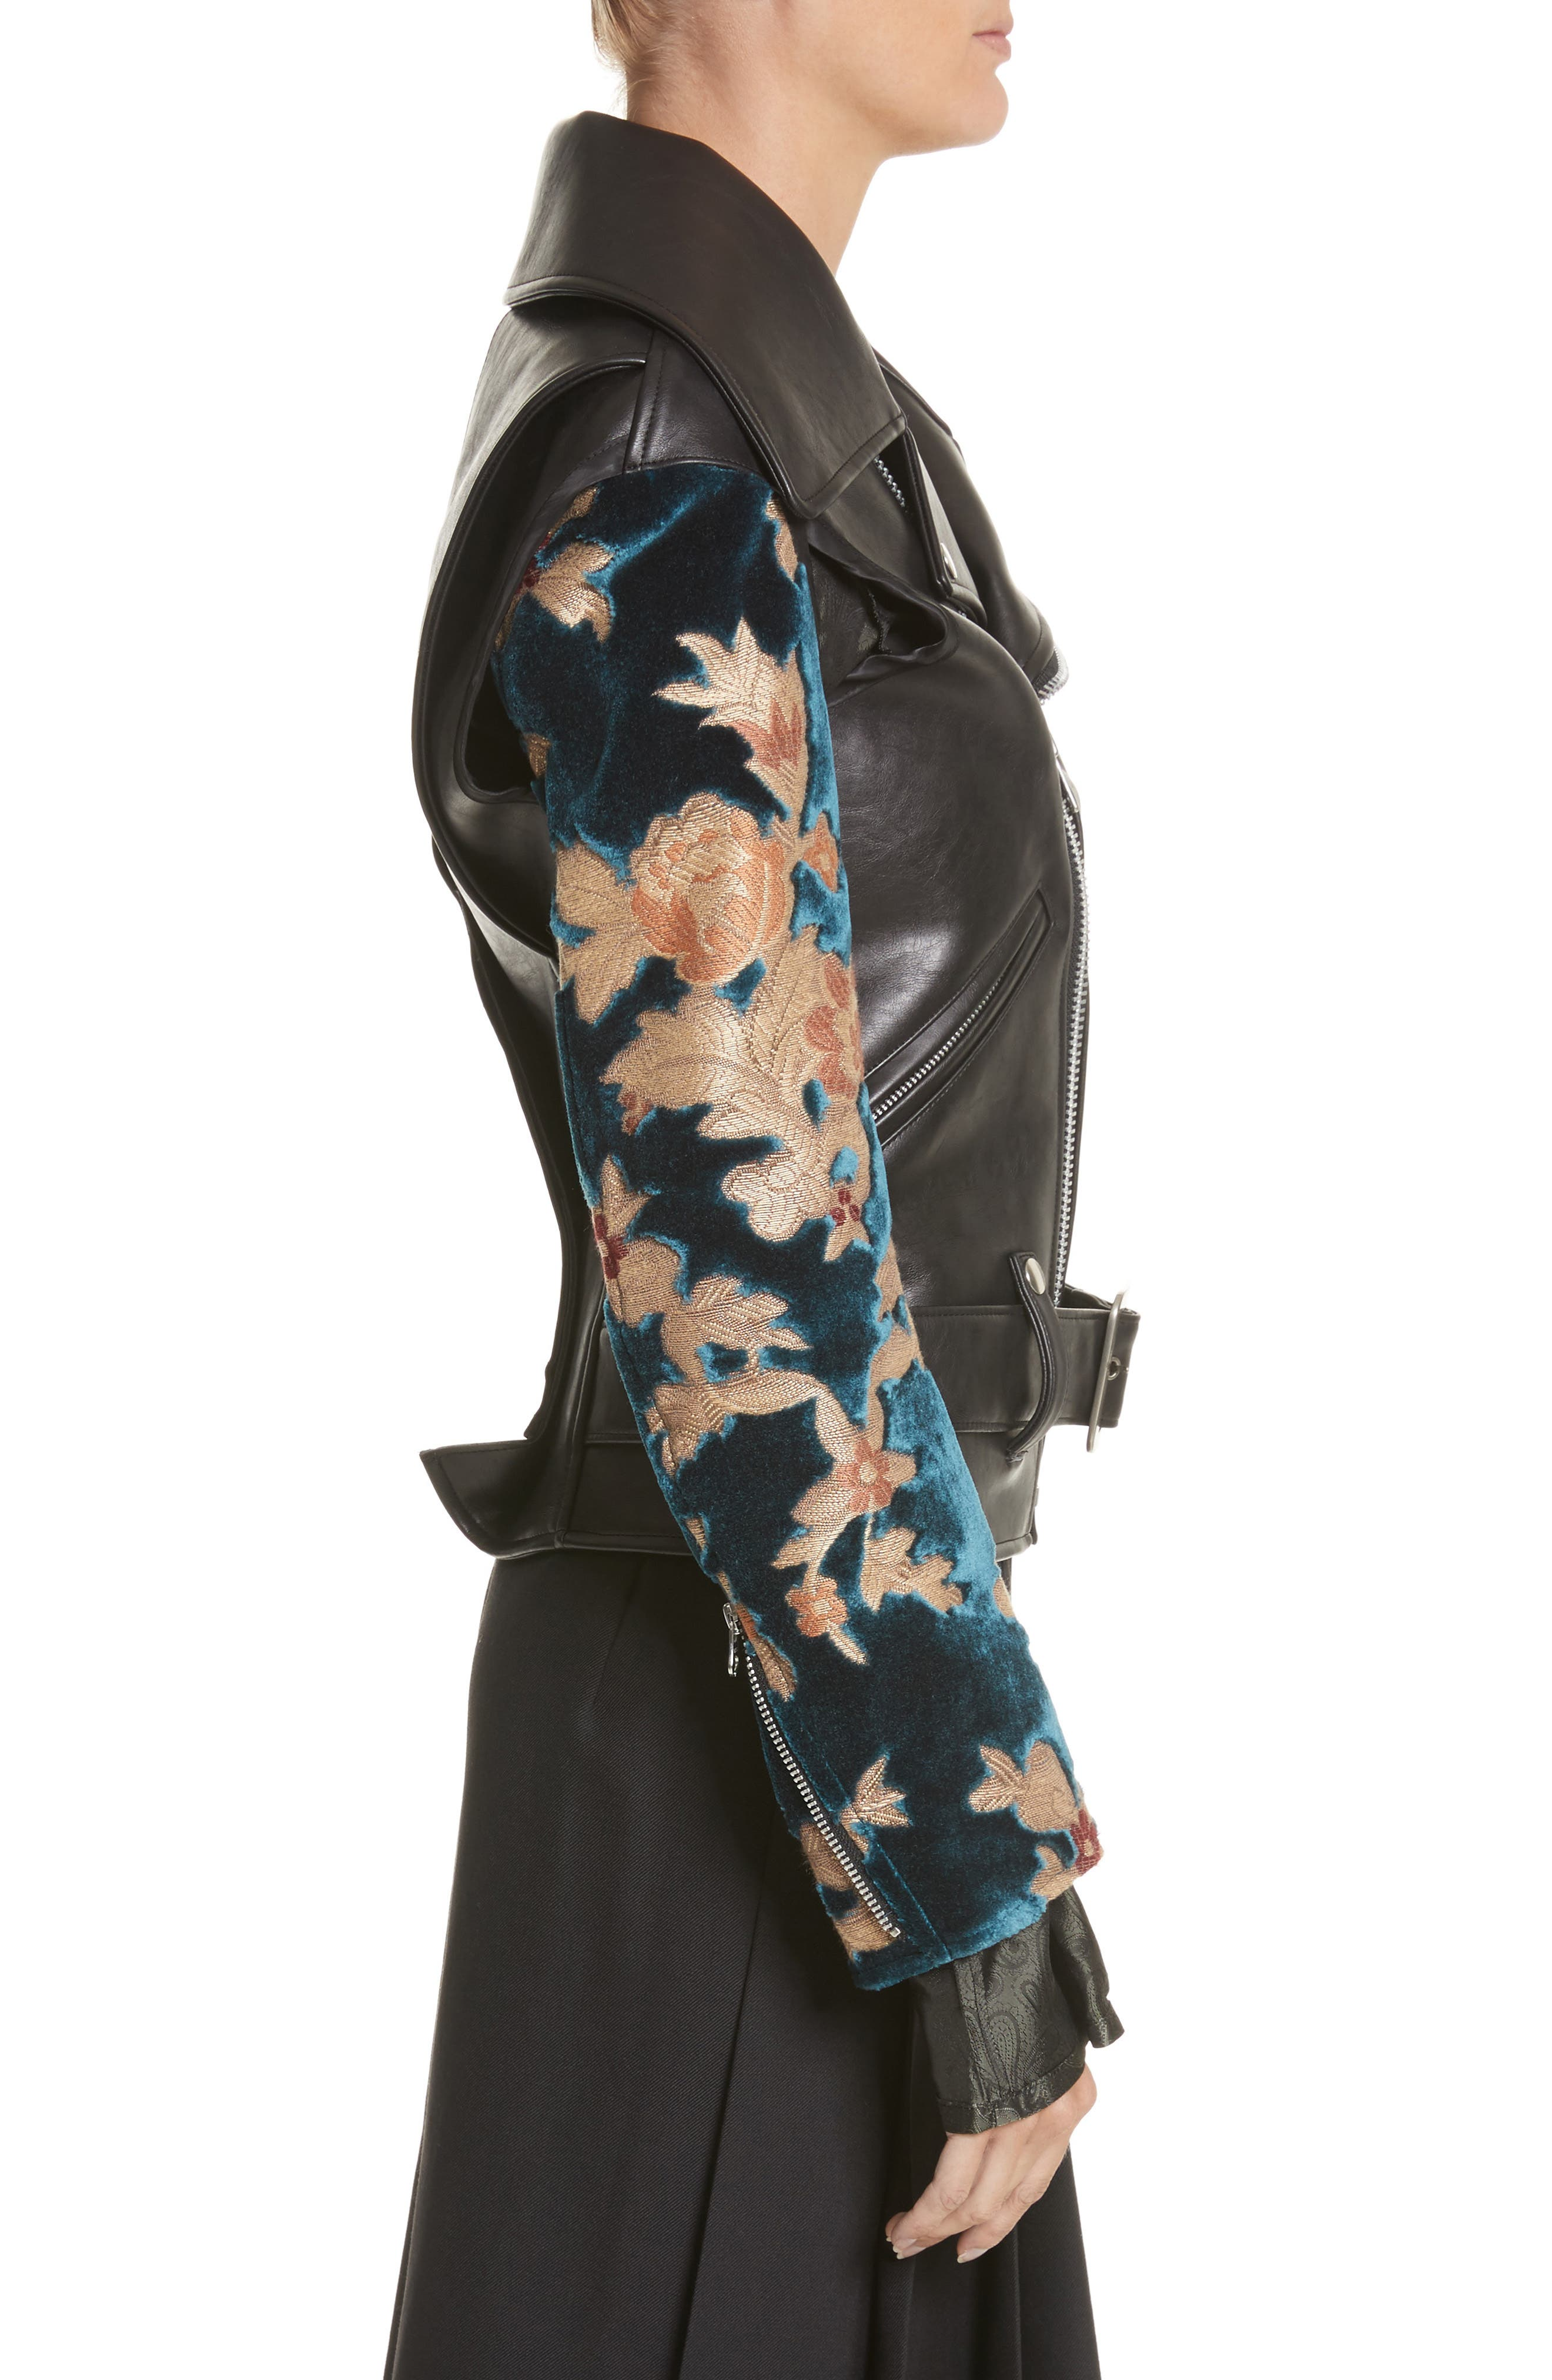 Faux Leather Moto Jacket with Floral Sleeves,                             Alternate thumbnail 3, color,                             Black X Blu/Bge